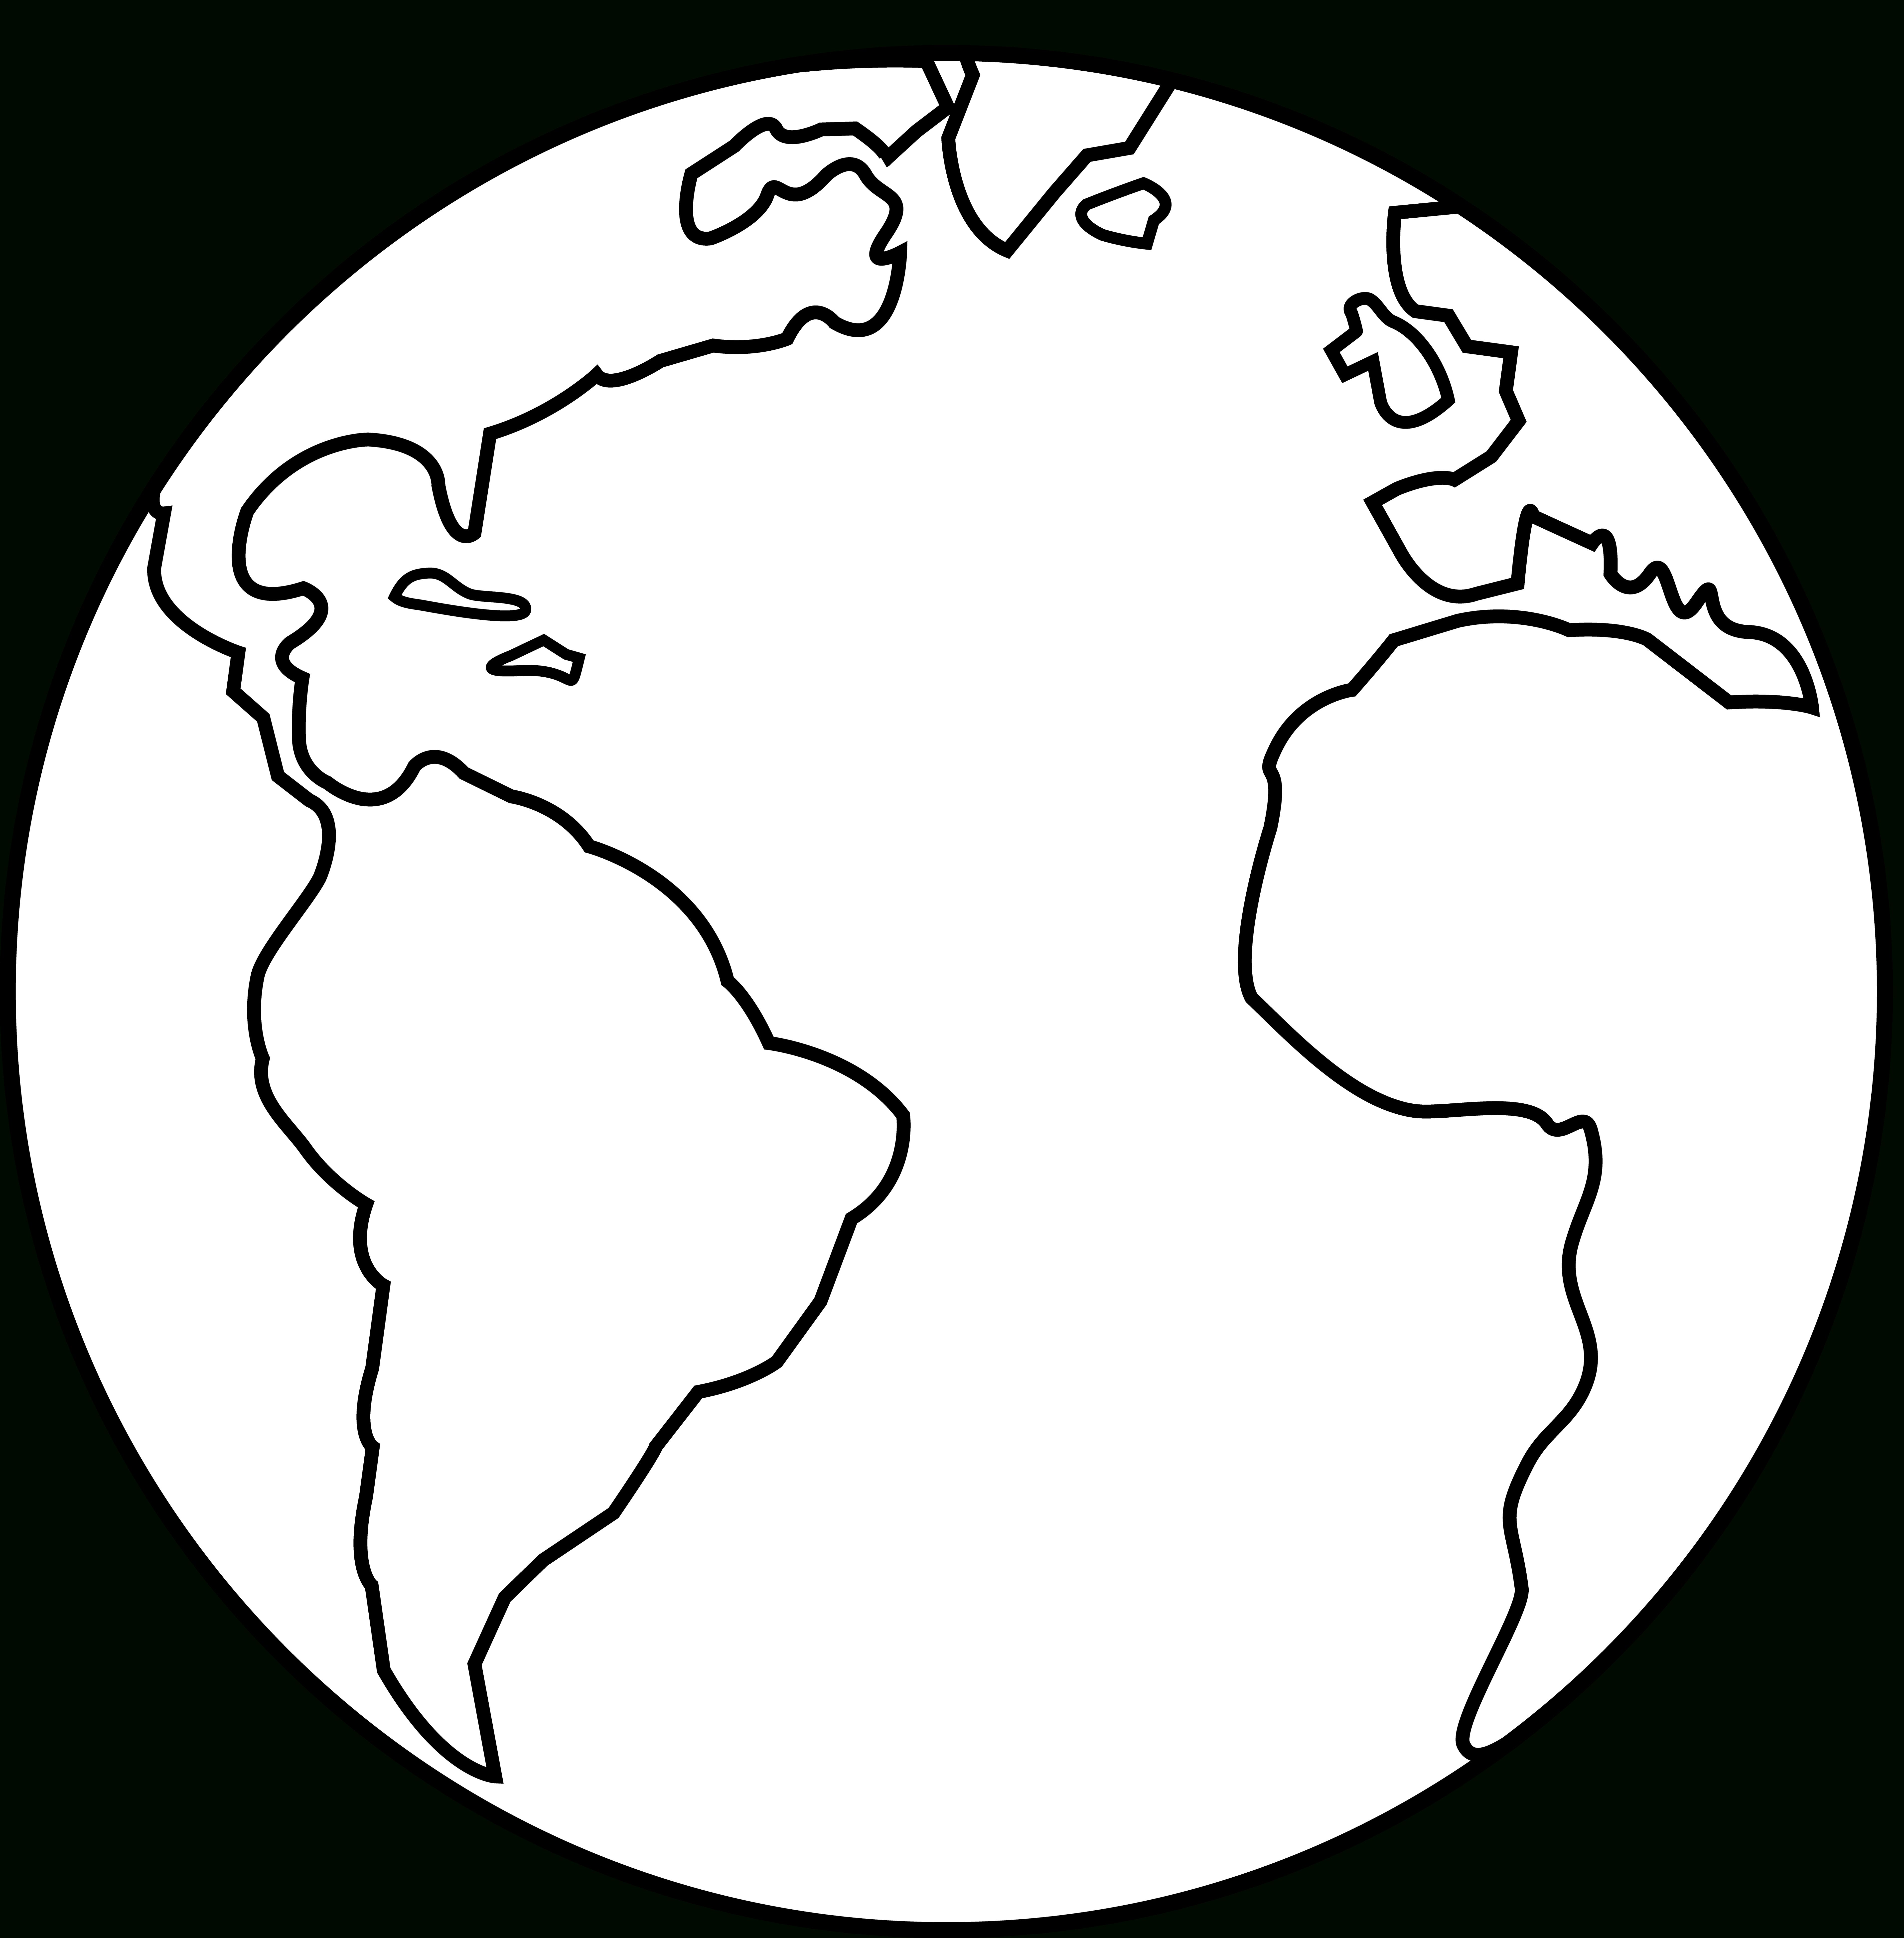 Simple Drawing Of Earth Planet Earth Clipart Simple Pencil And In Color Planet Earth Earth Drawings Planet Drawing Easy Drawings